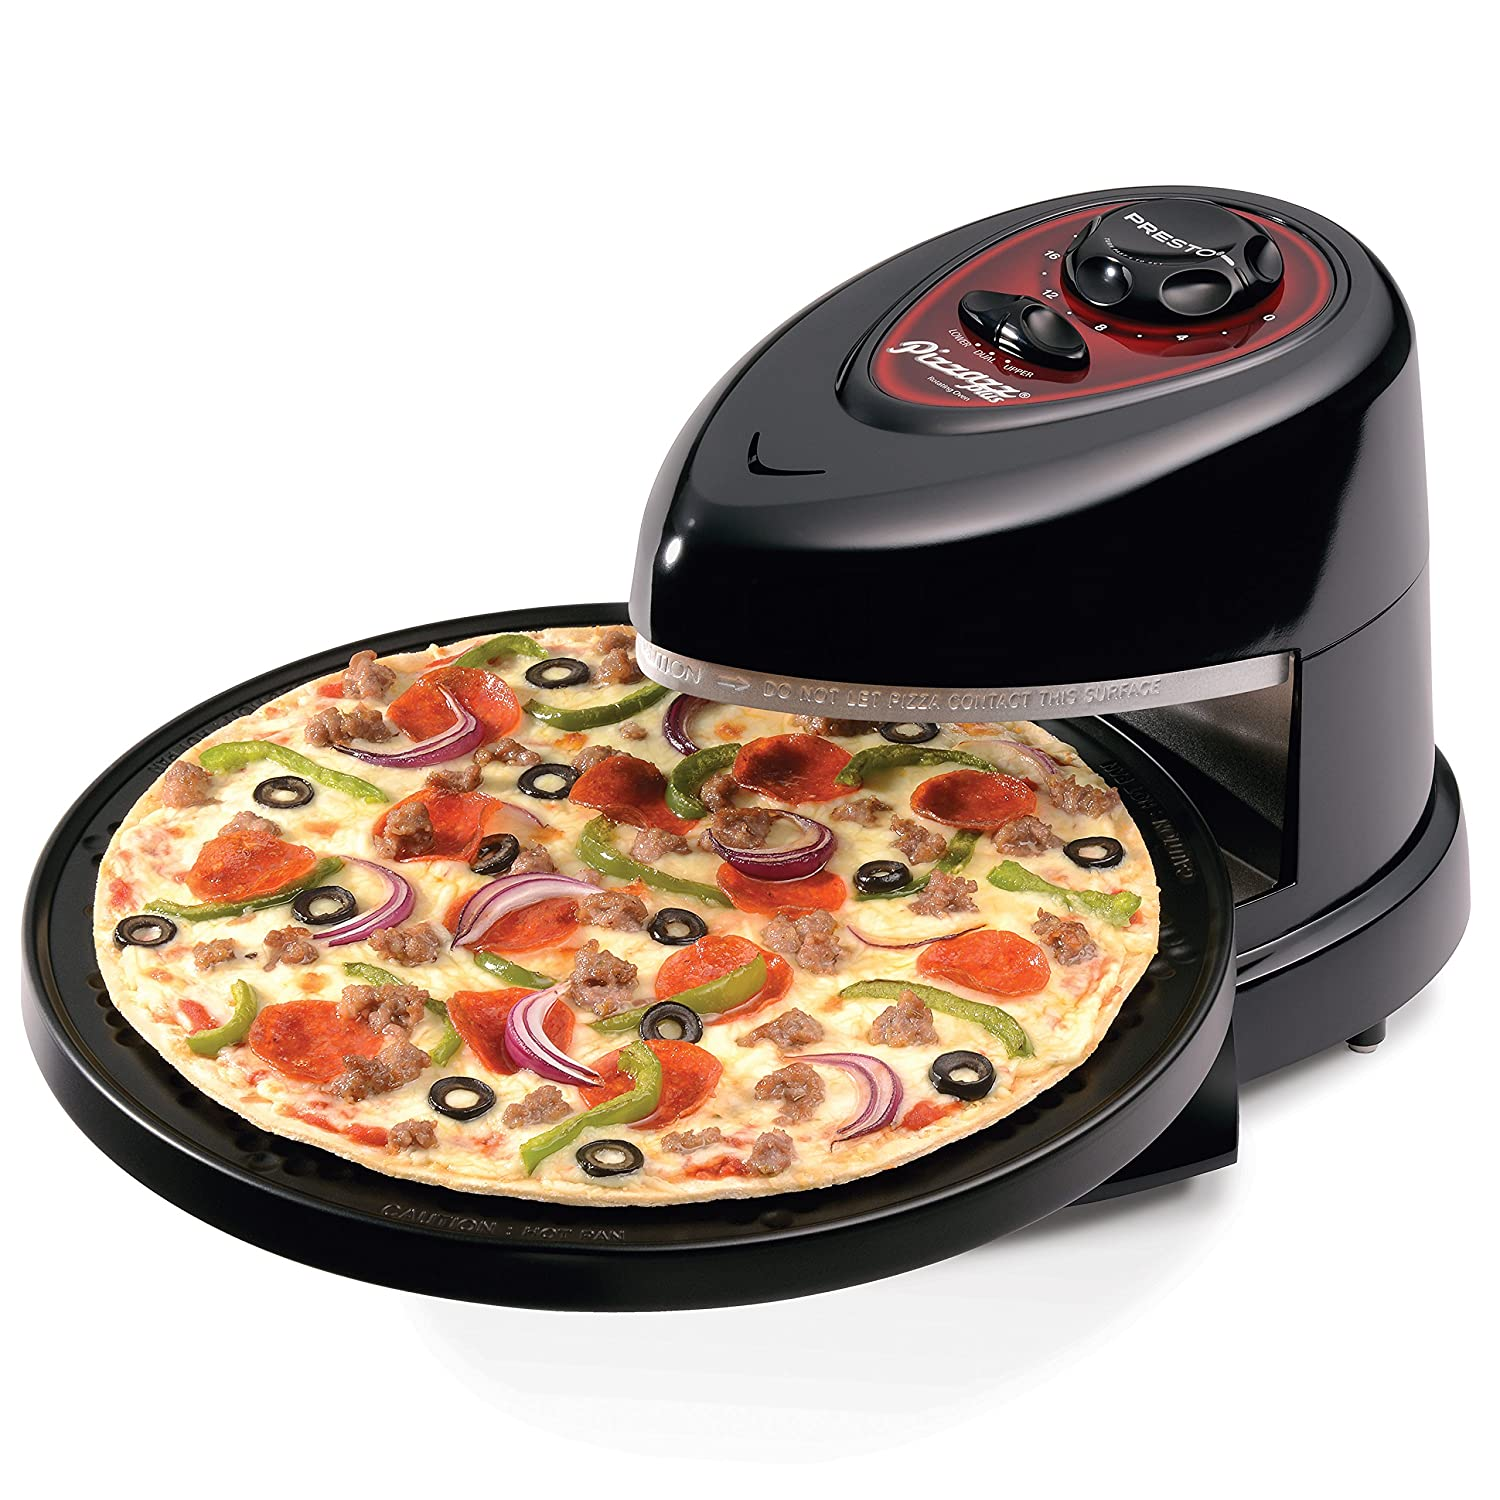 Pizzazz Plus Rotating Oven